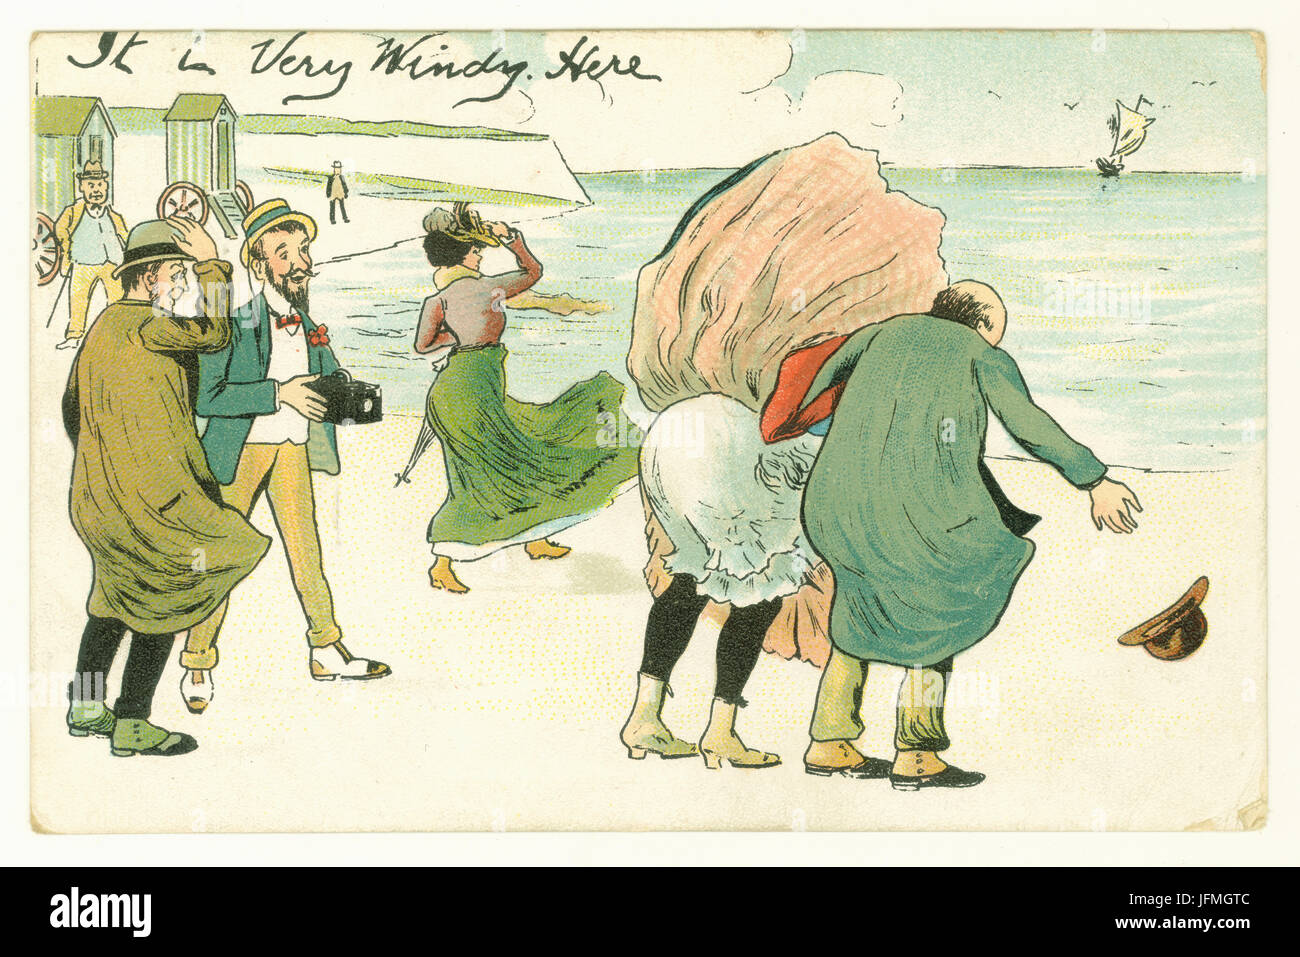 Edwardian humorous seaside postcard from the London View Co., circa 1905, U.K - Stock Image